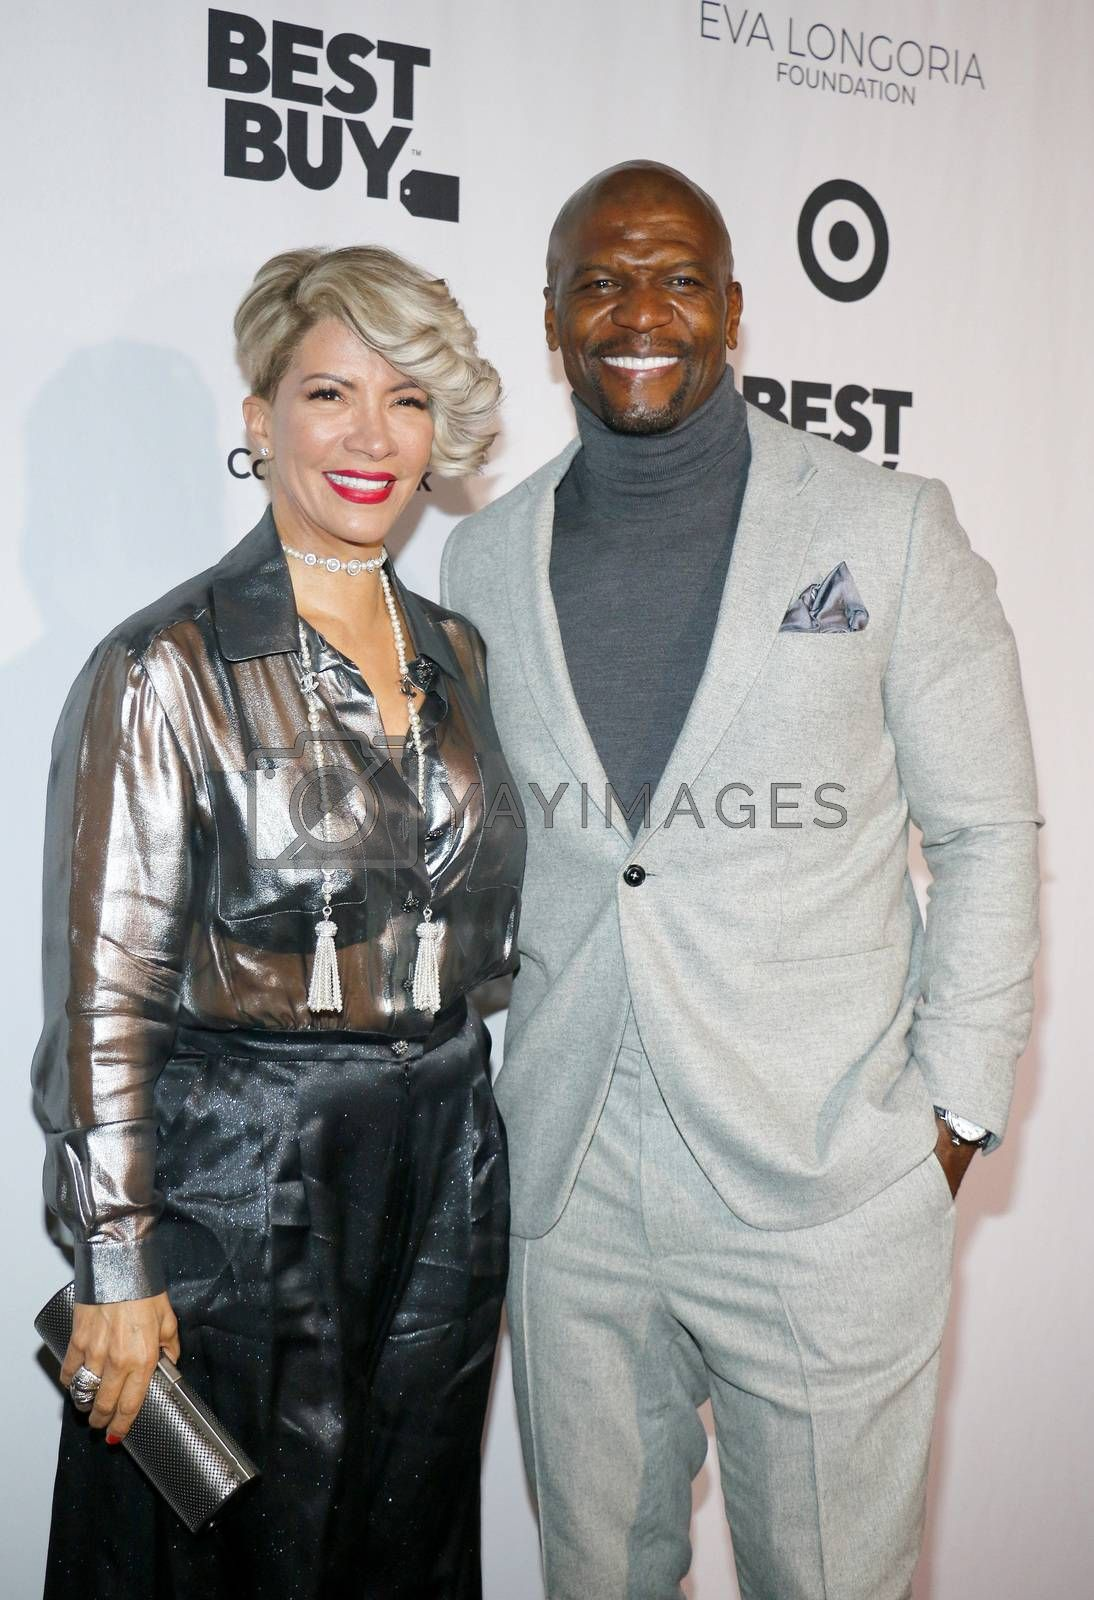 Terry Crews and Rebecca Crews at the Eva Longoria Foundation Dinner Gala held at the Four Seasons Hotel in Beverly Hills, USA on November 8, 2018.